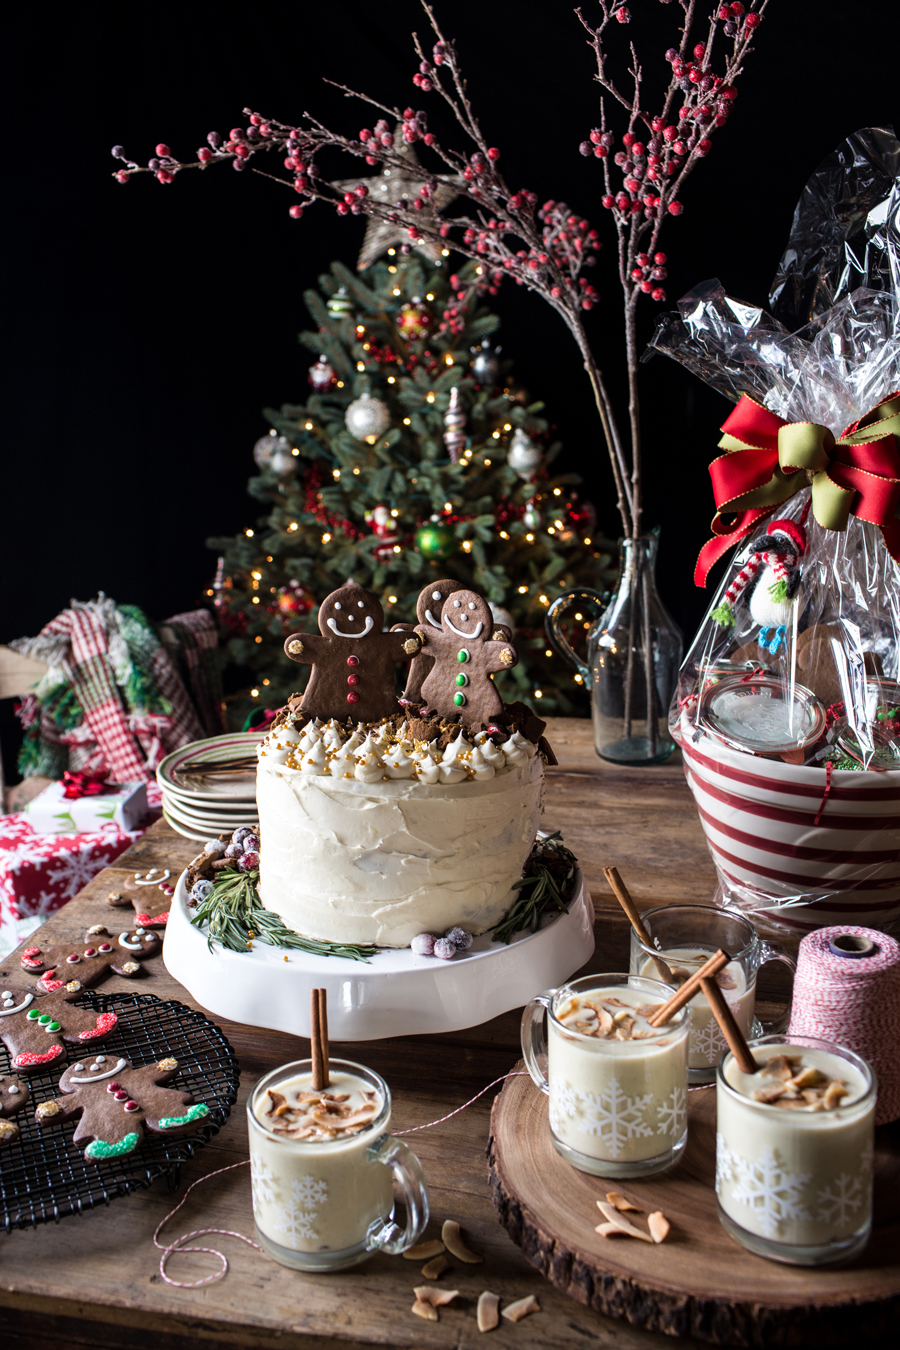 Christmas party dessert recipes crate and barrel blog for Desserts to take to a christmas party